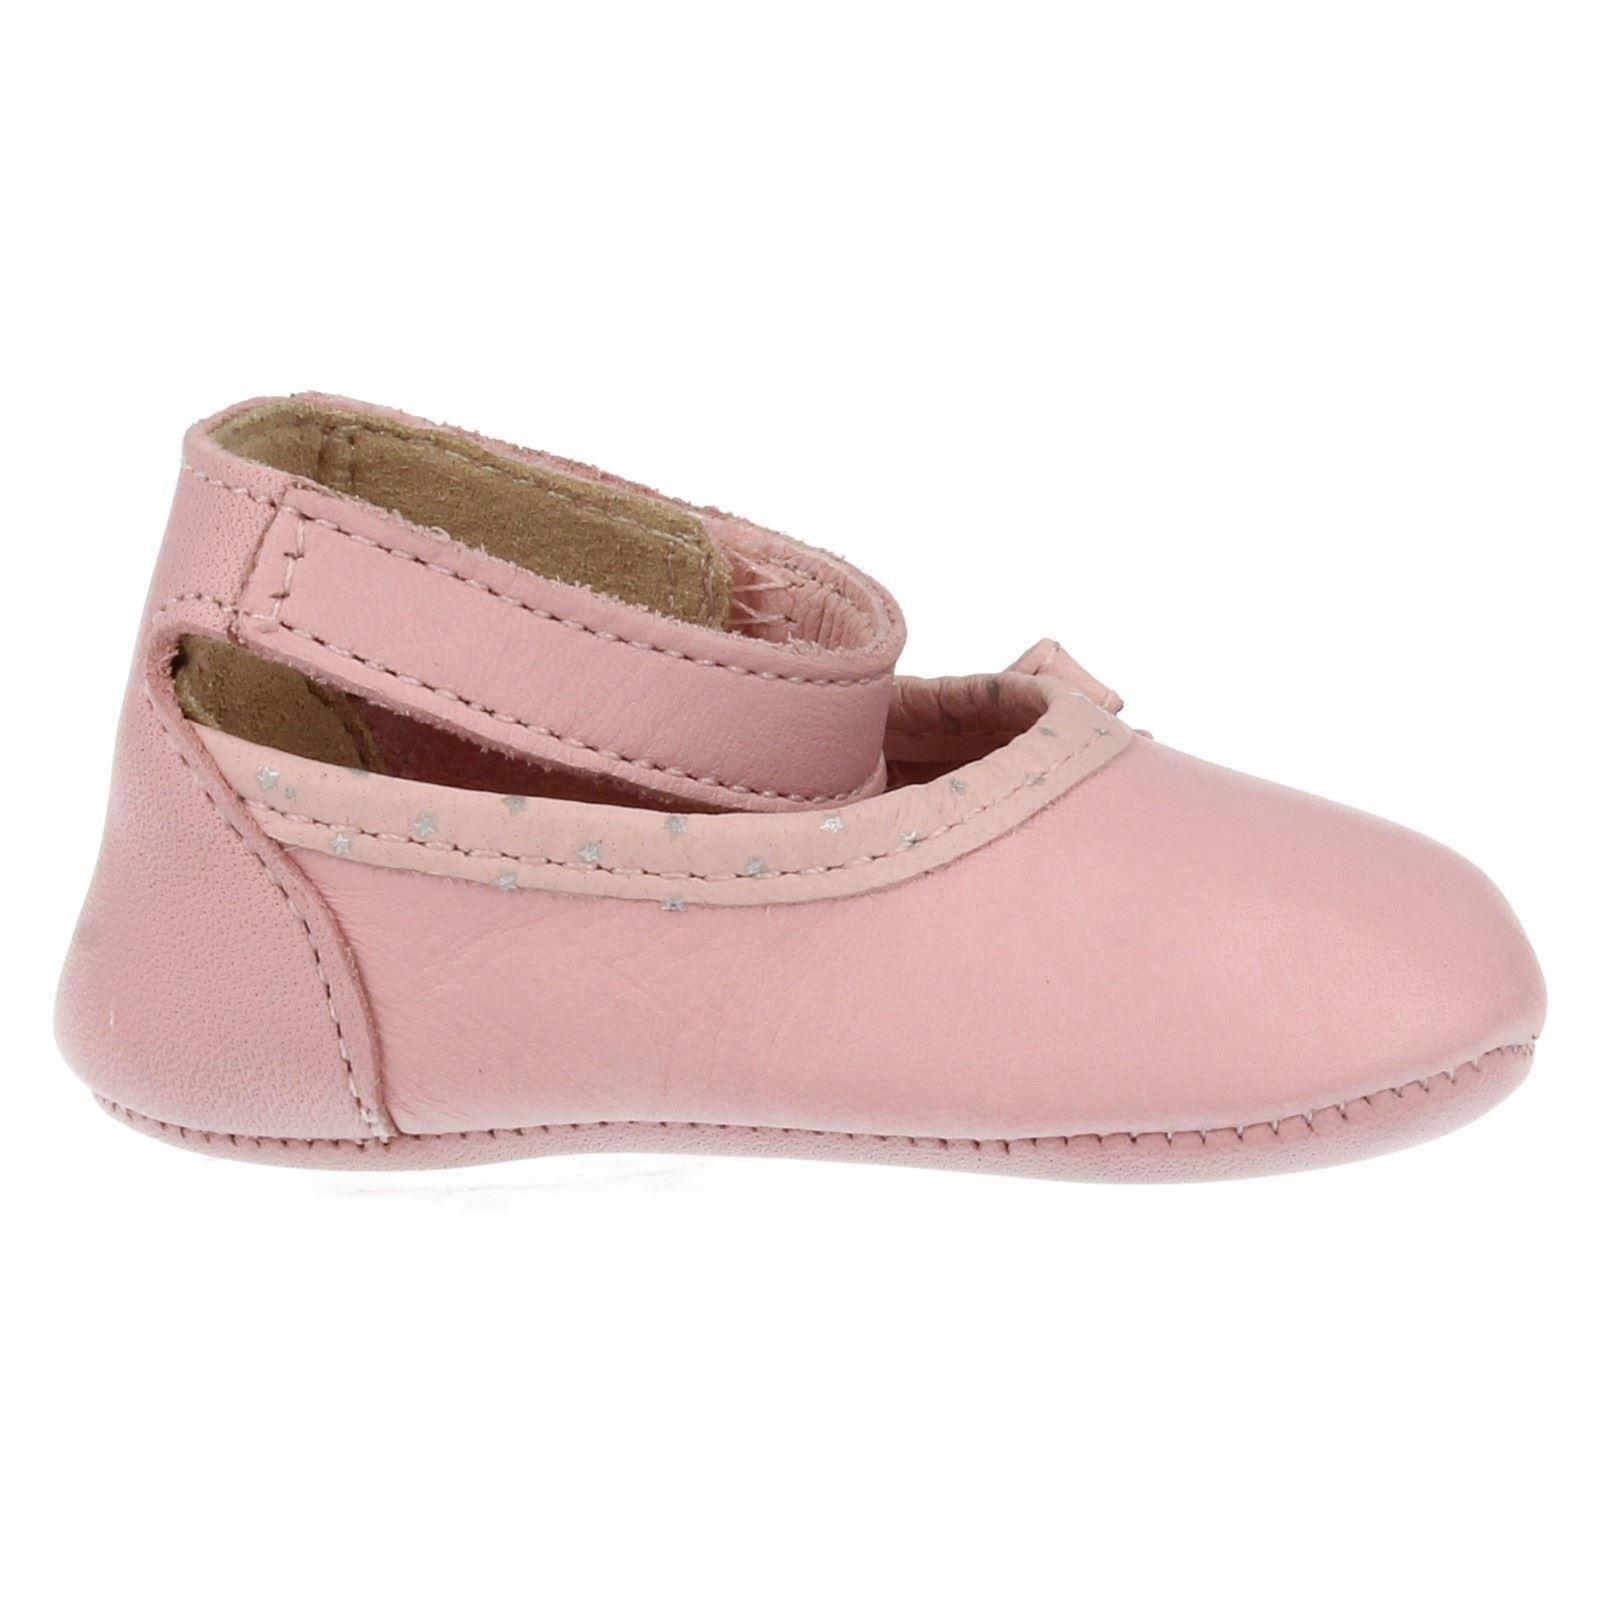 clarks soft leather pram shoes with baby